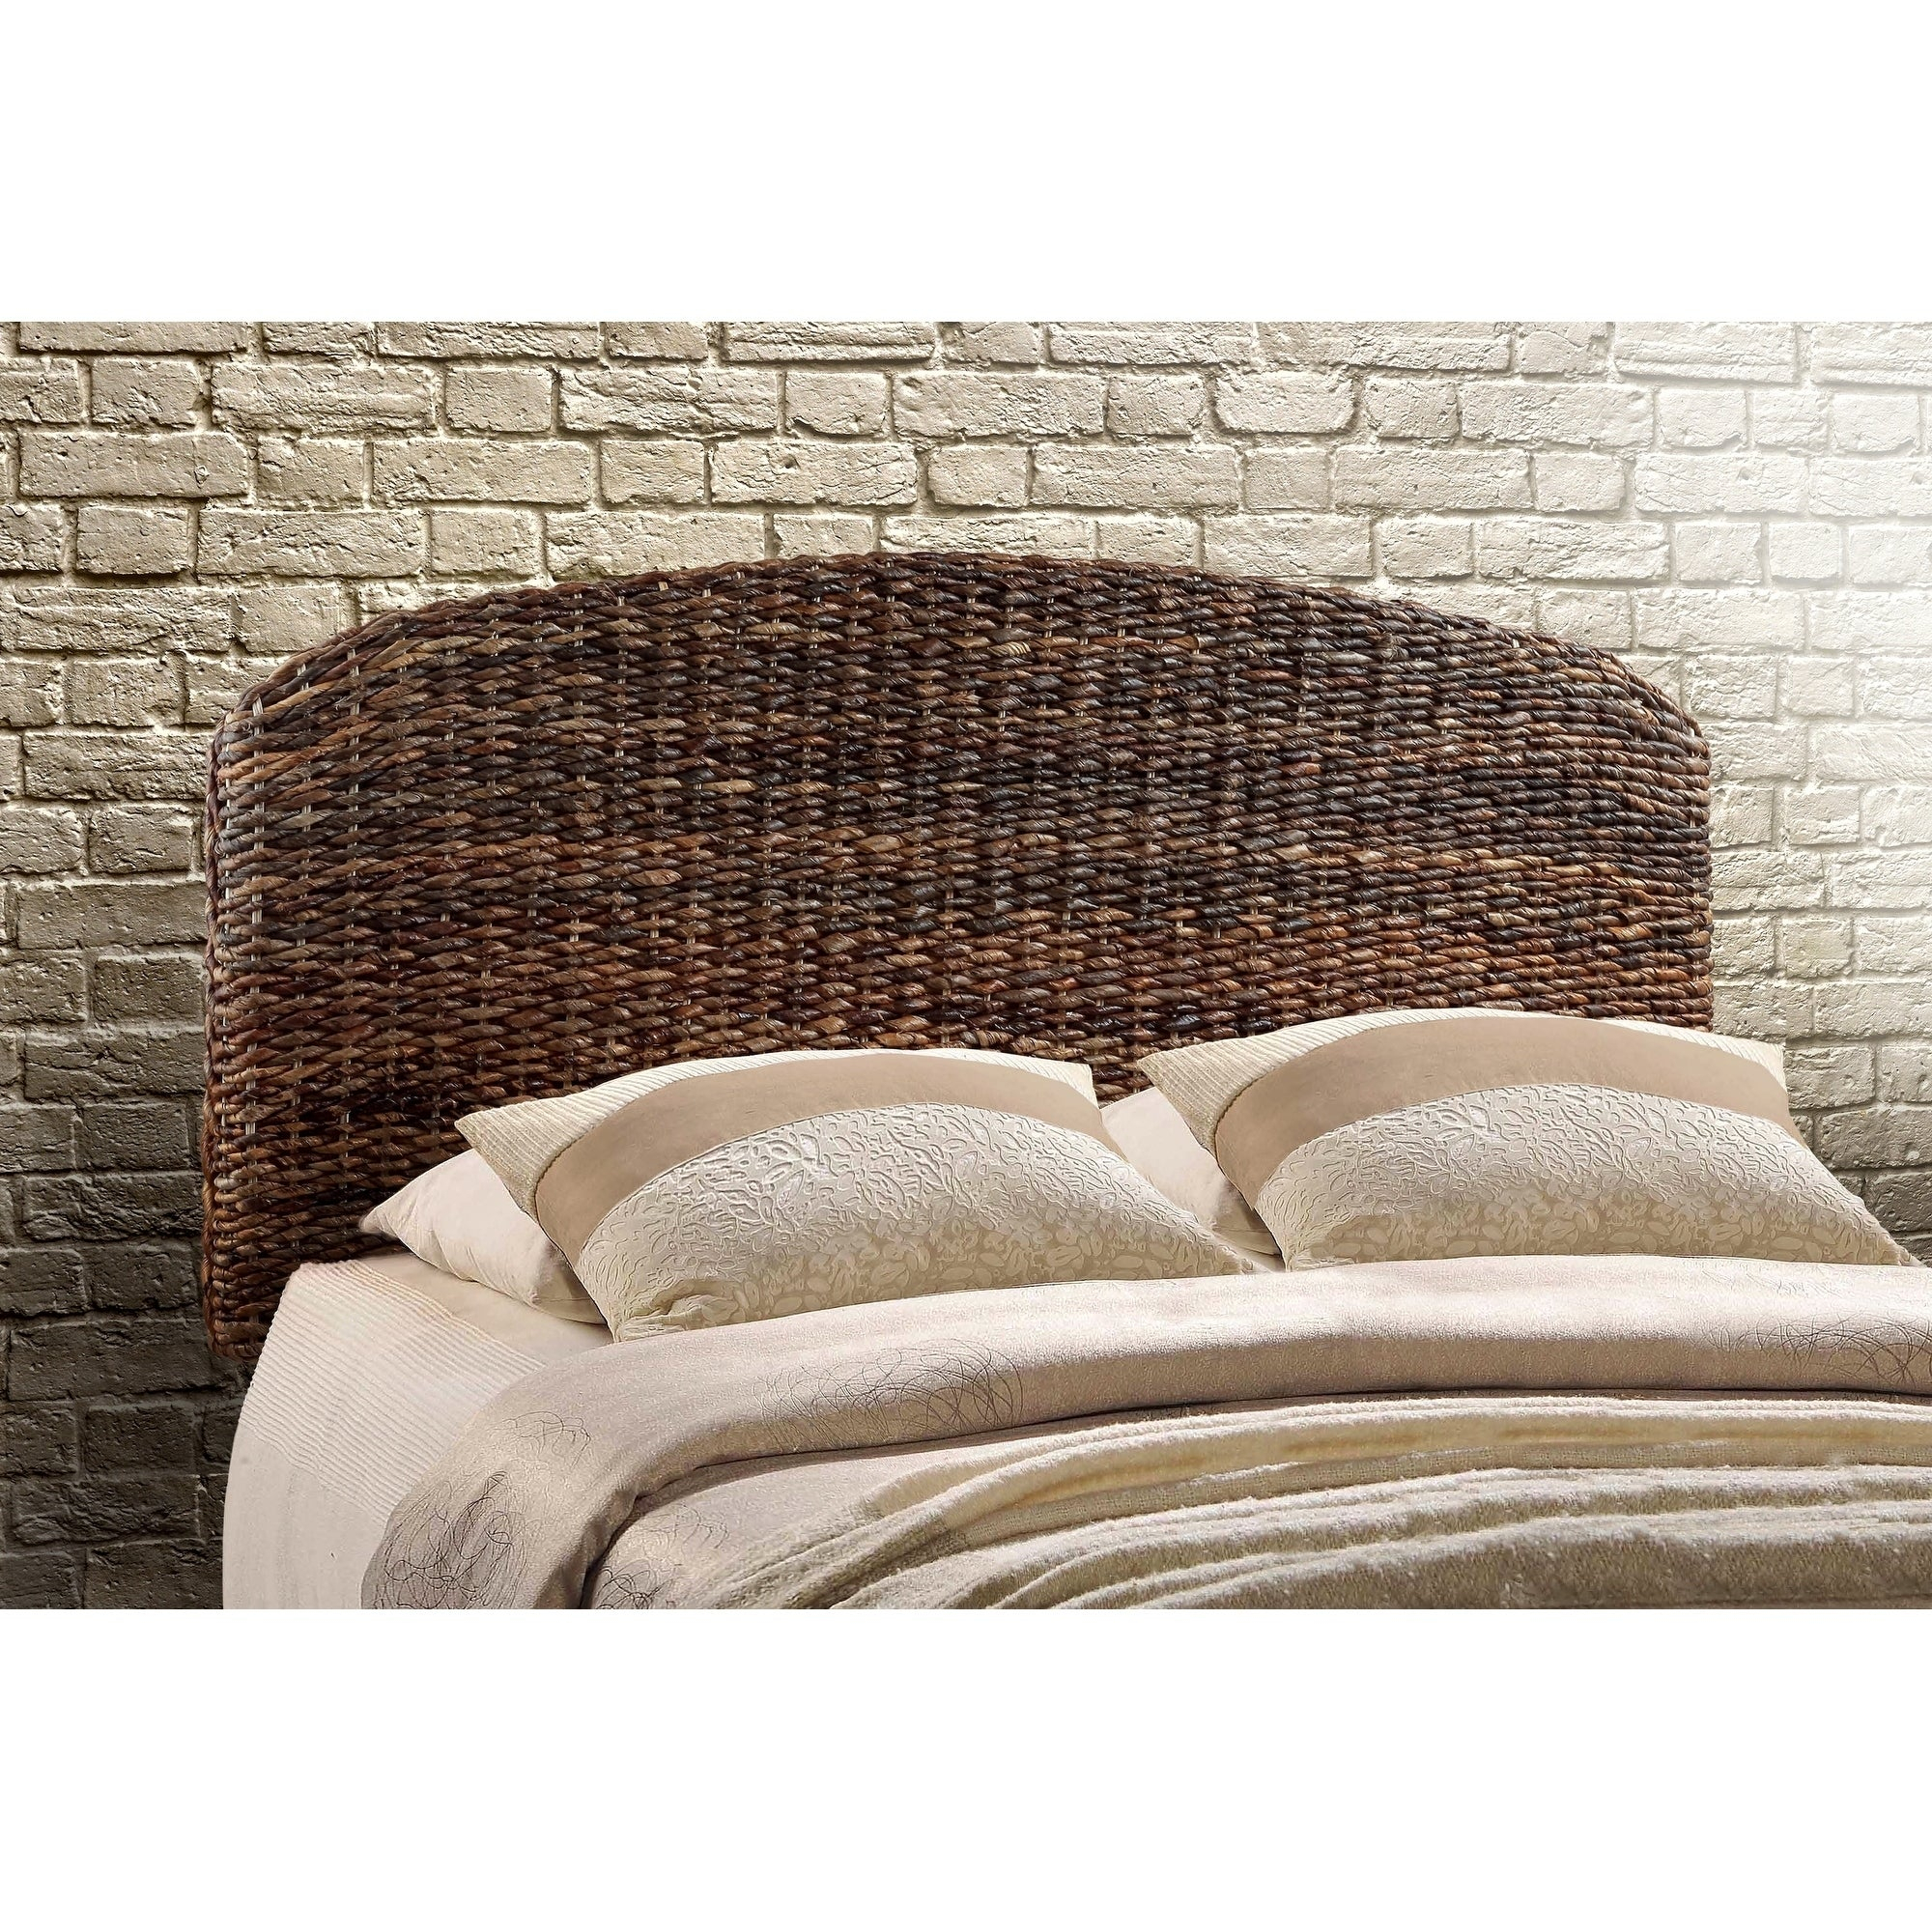 Current Shop Raja Queen Size Handwoven Banana Leaf Headboard – On Sale Throughout 4 Piece Handwoven Wheel Wall Decor Sets (View 5 of 20)